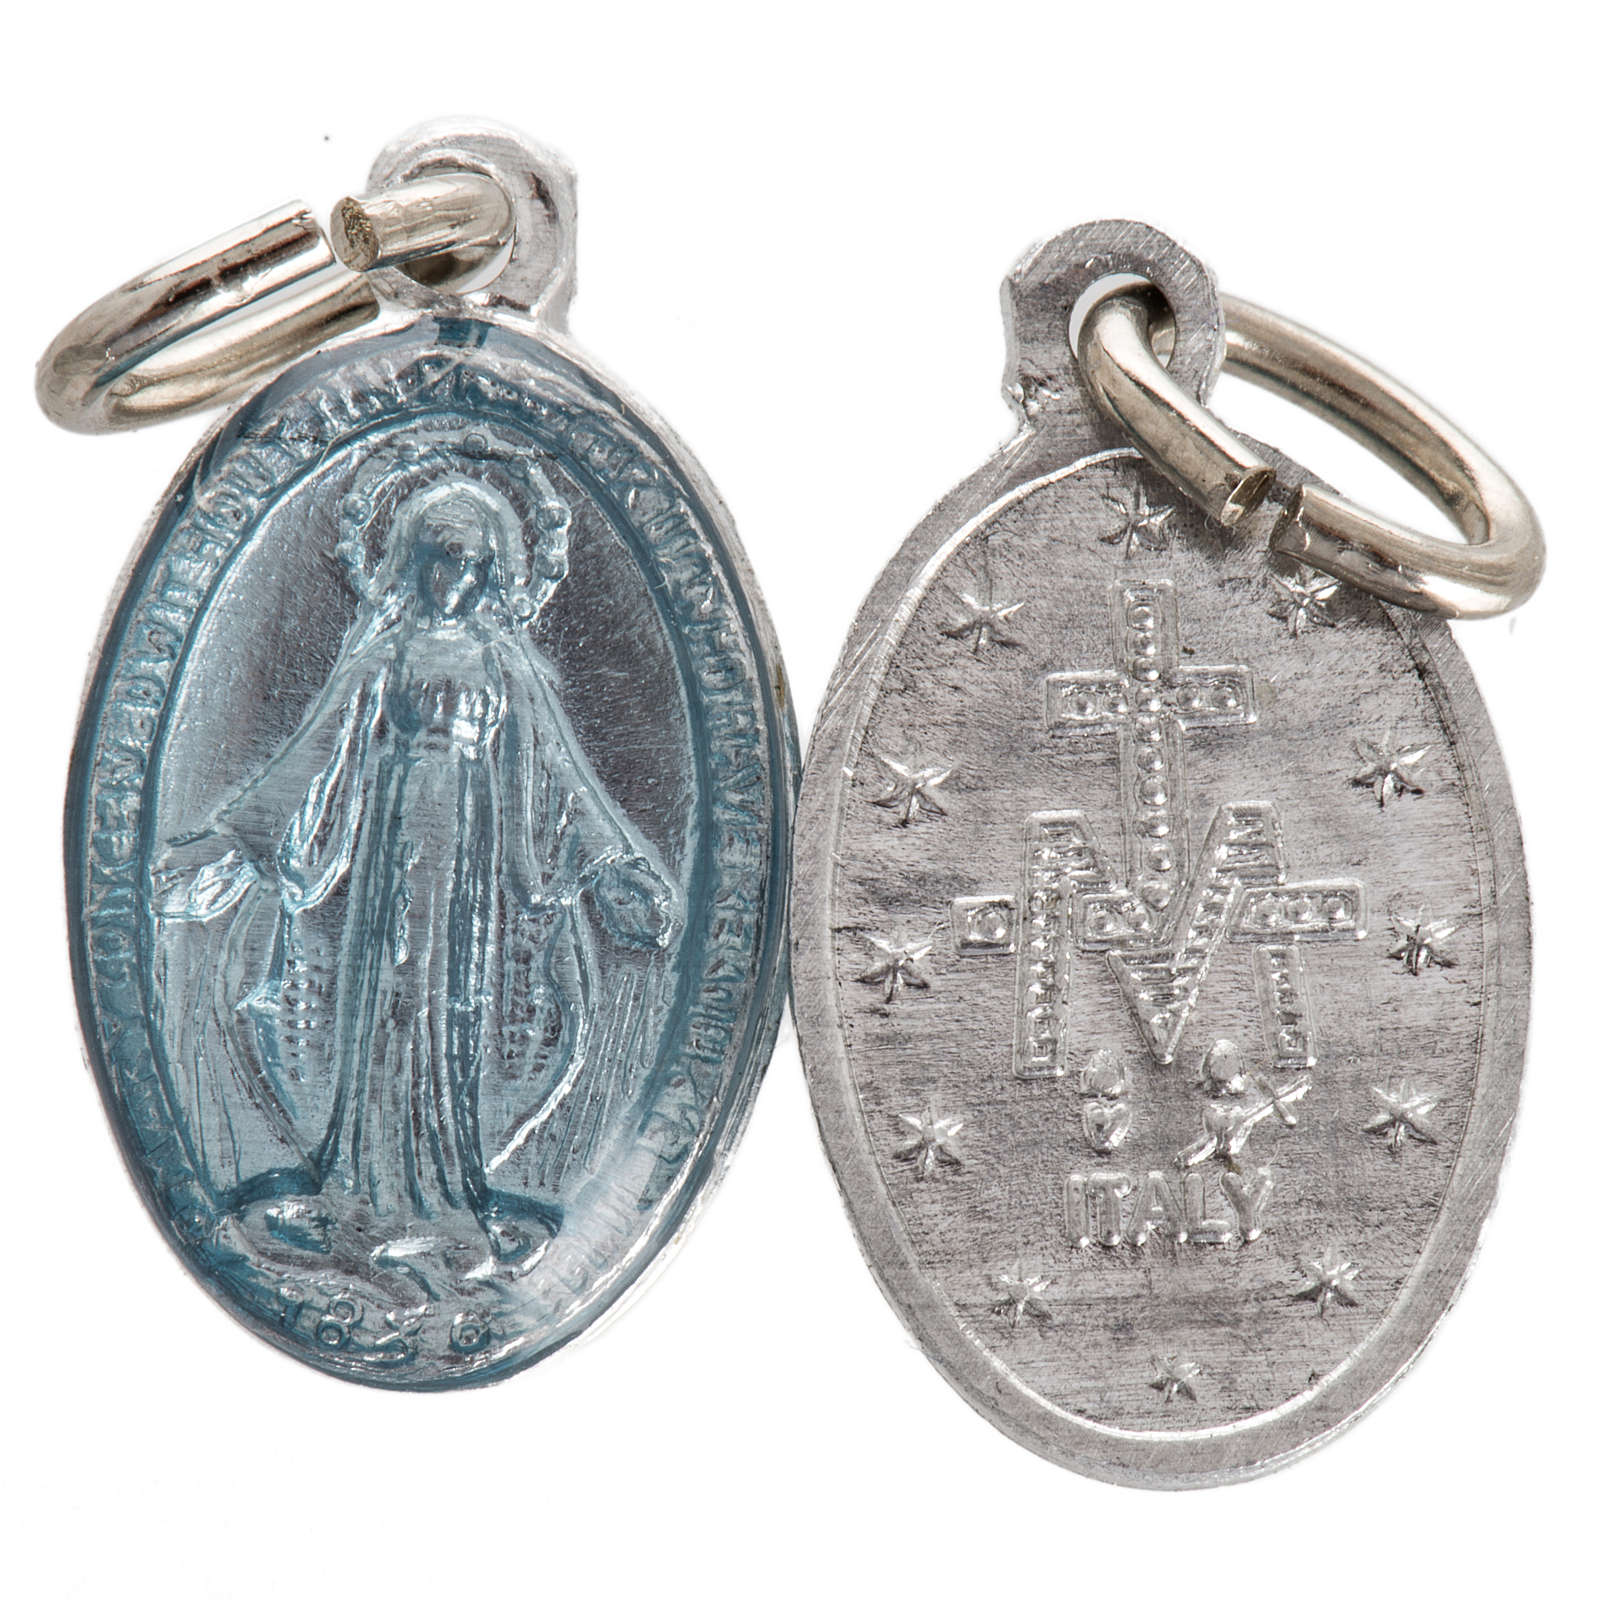 Medal of Our Lady of Lourdes, steel and light blue enamel 18mm 4